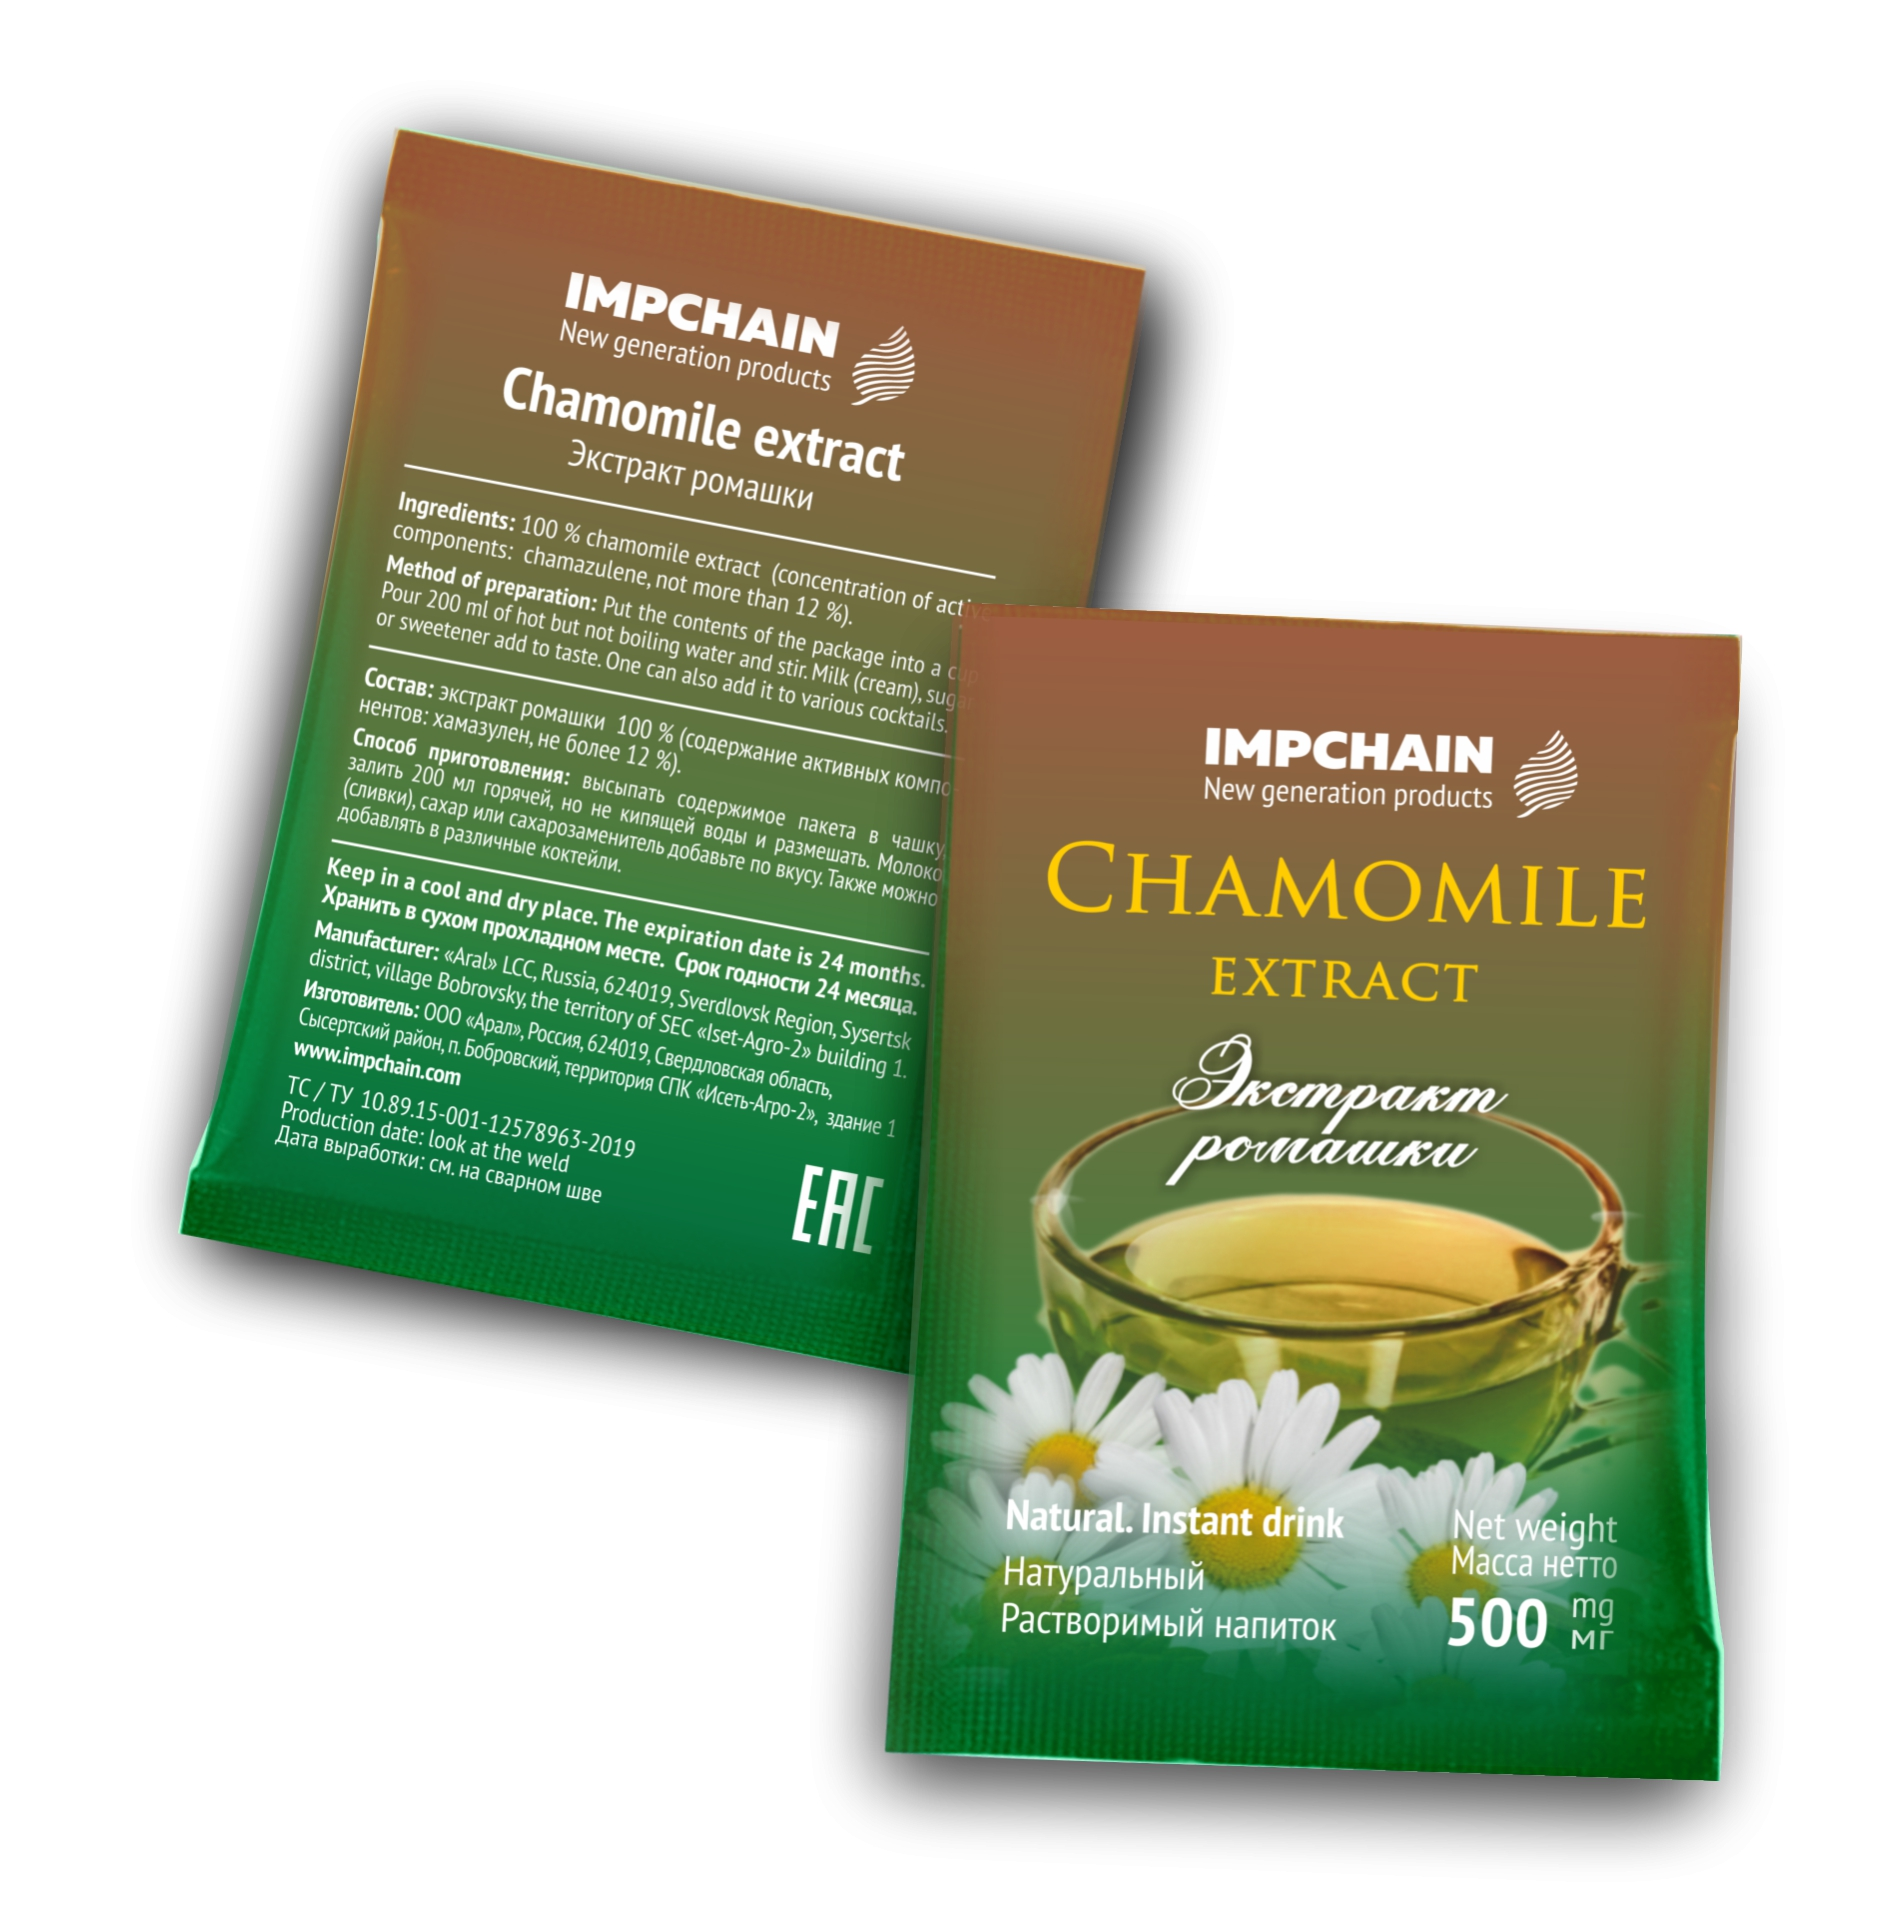 Chamomile extract. Instant drink. The price is indicated for the 1st package. The price of a bag is 20 rubles.